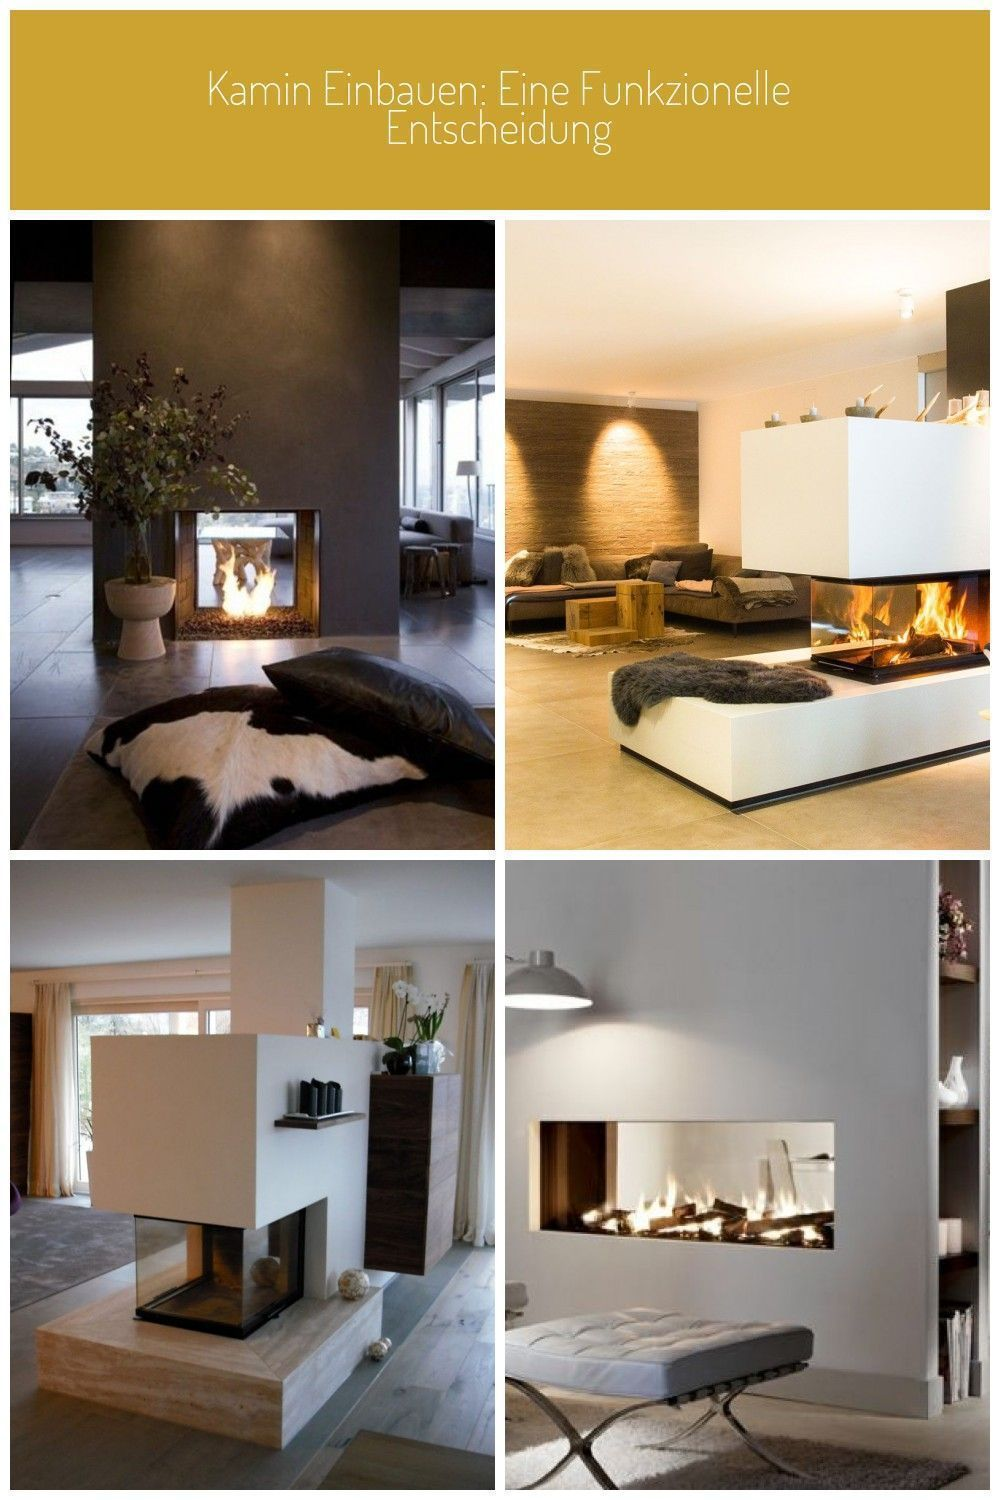 Bio ethanol fireplace as a room divider and two pillows on the floor room